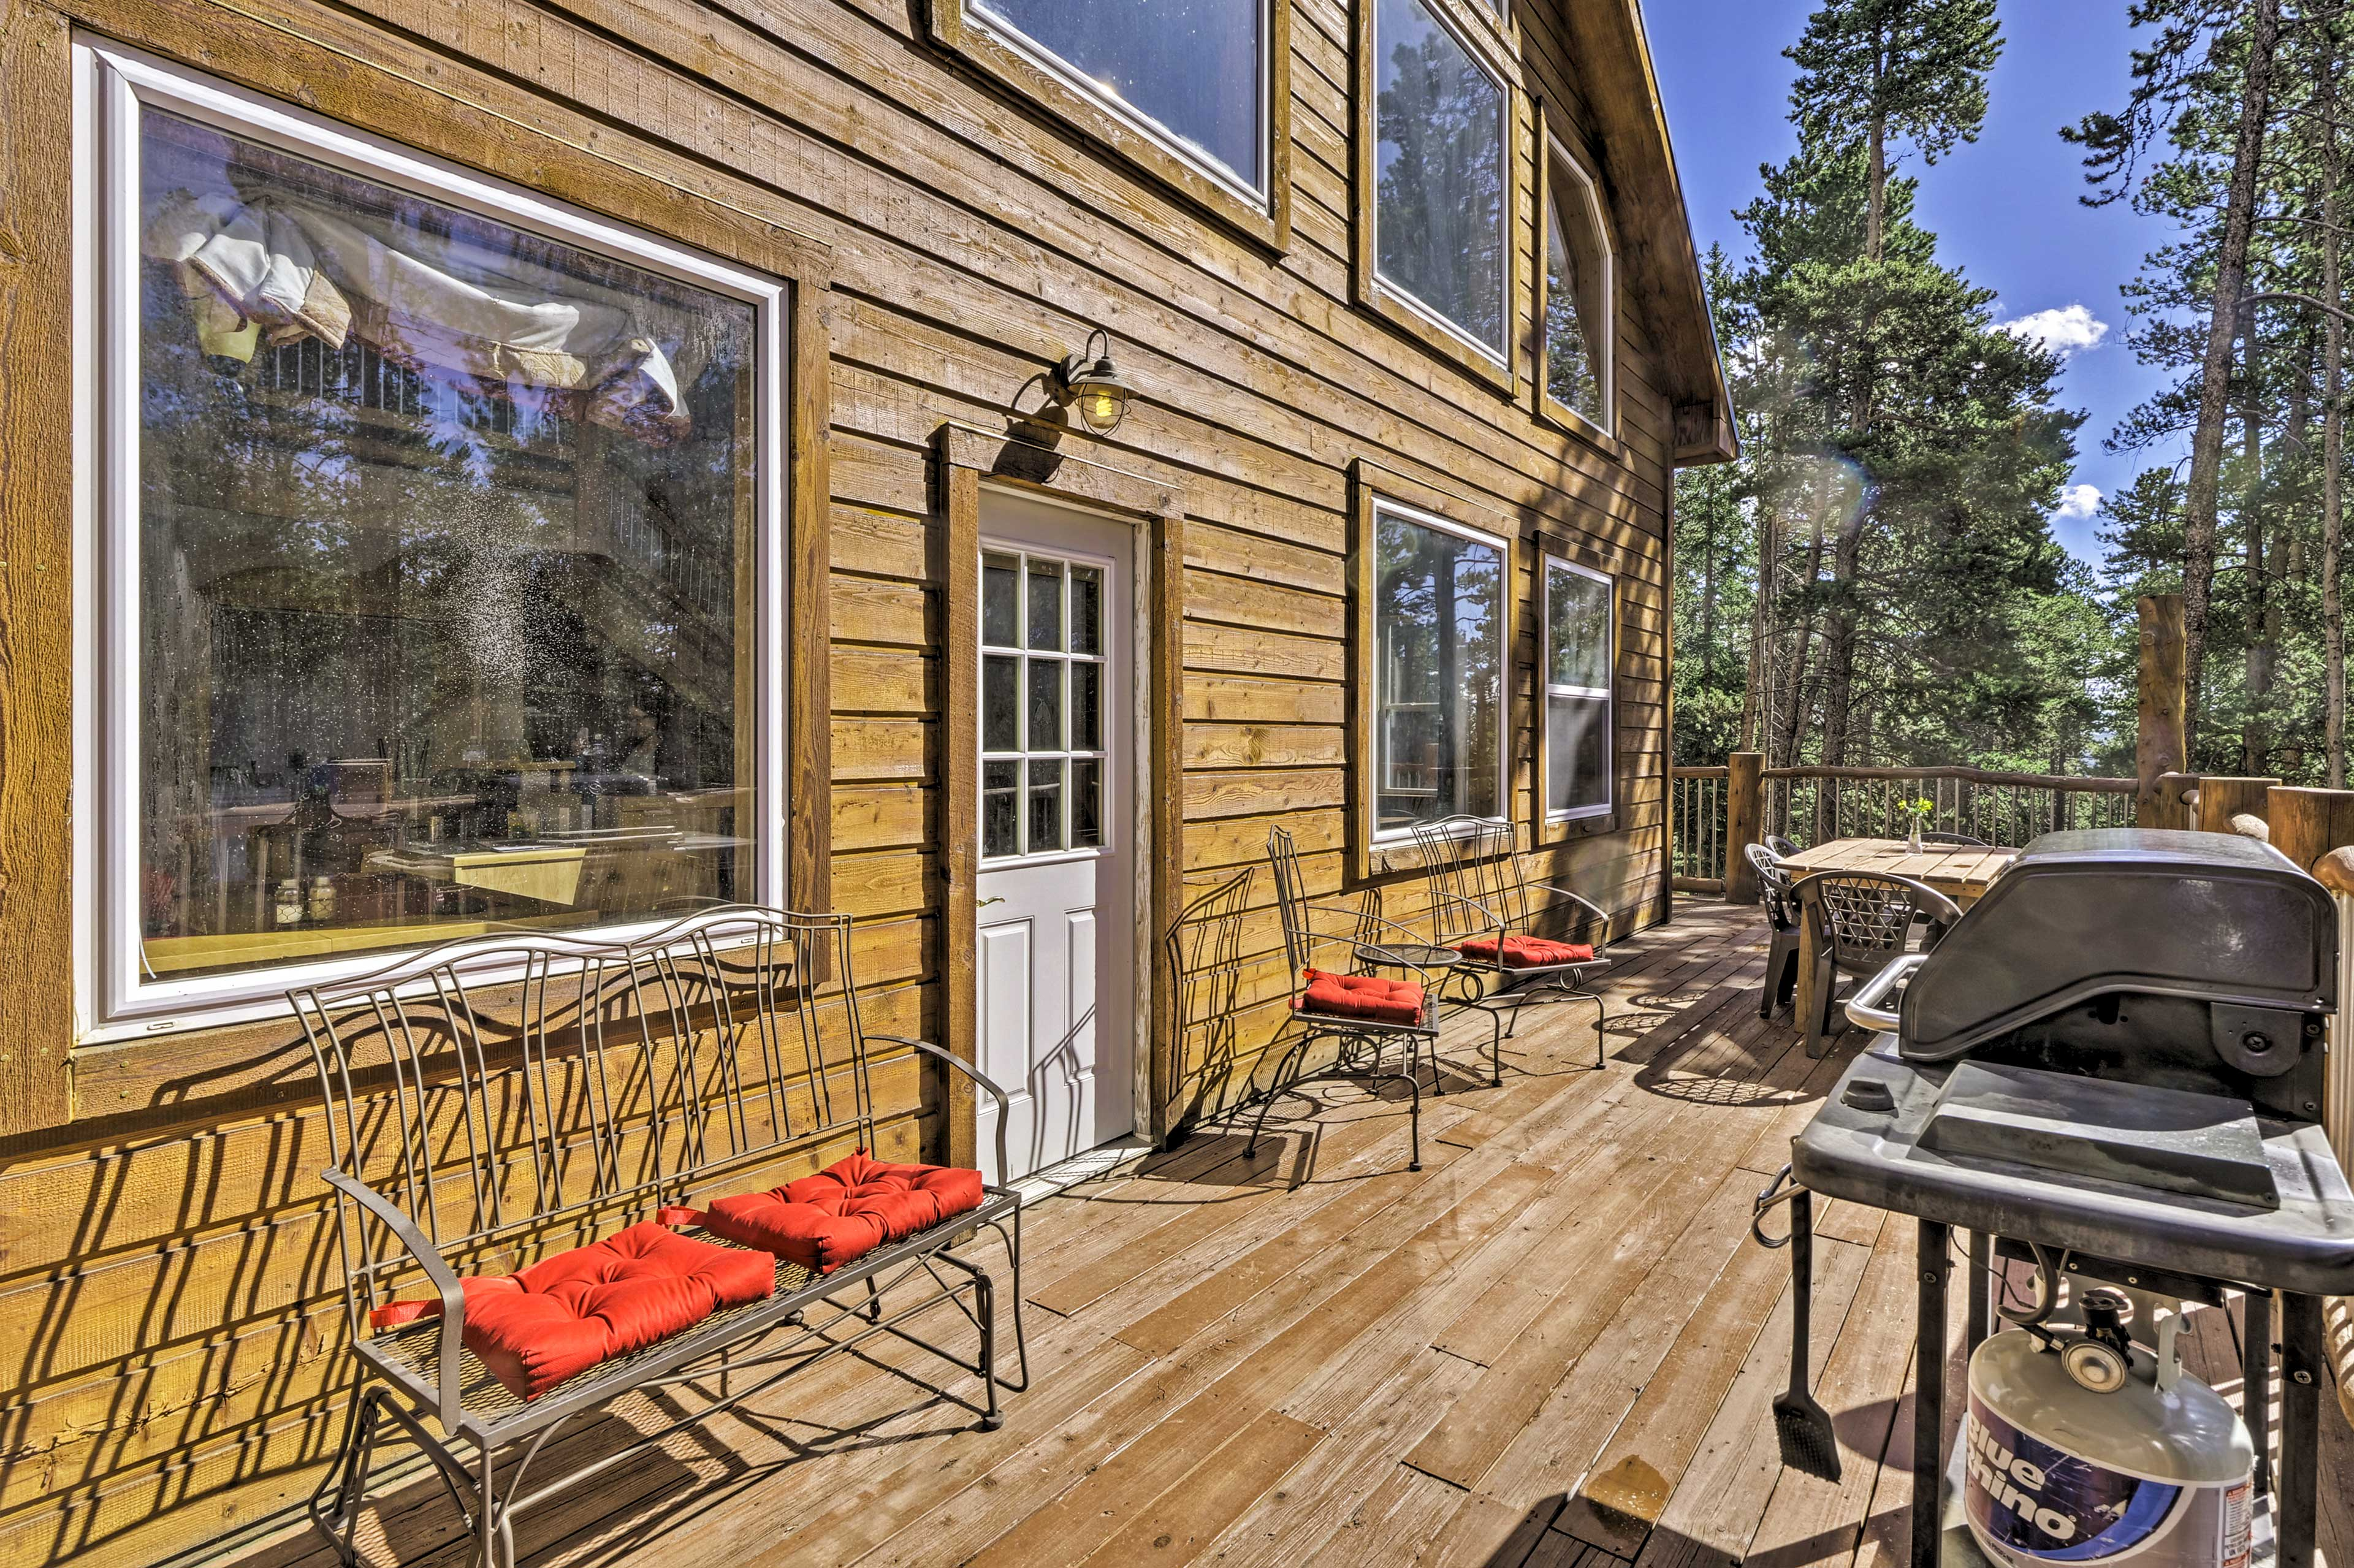 There is plenty of lounge furniture to soak in the Colorado sunshine.